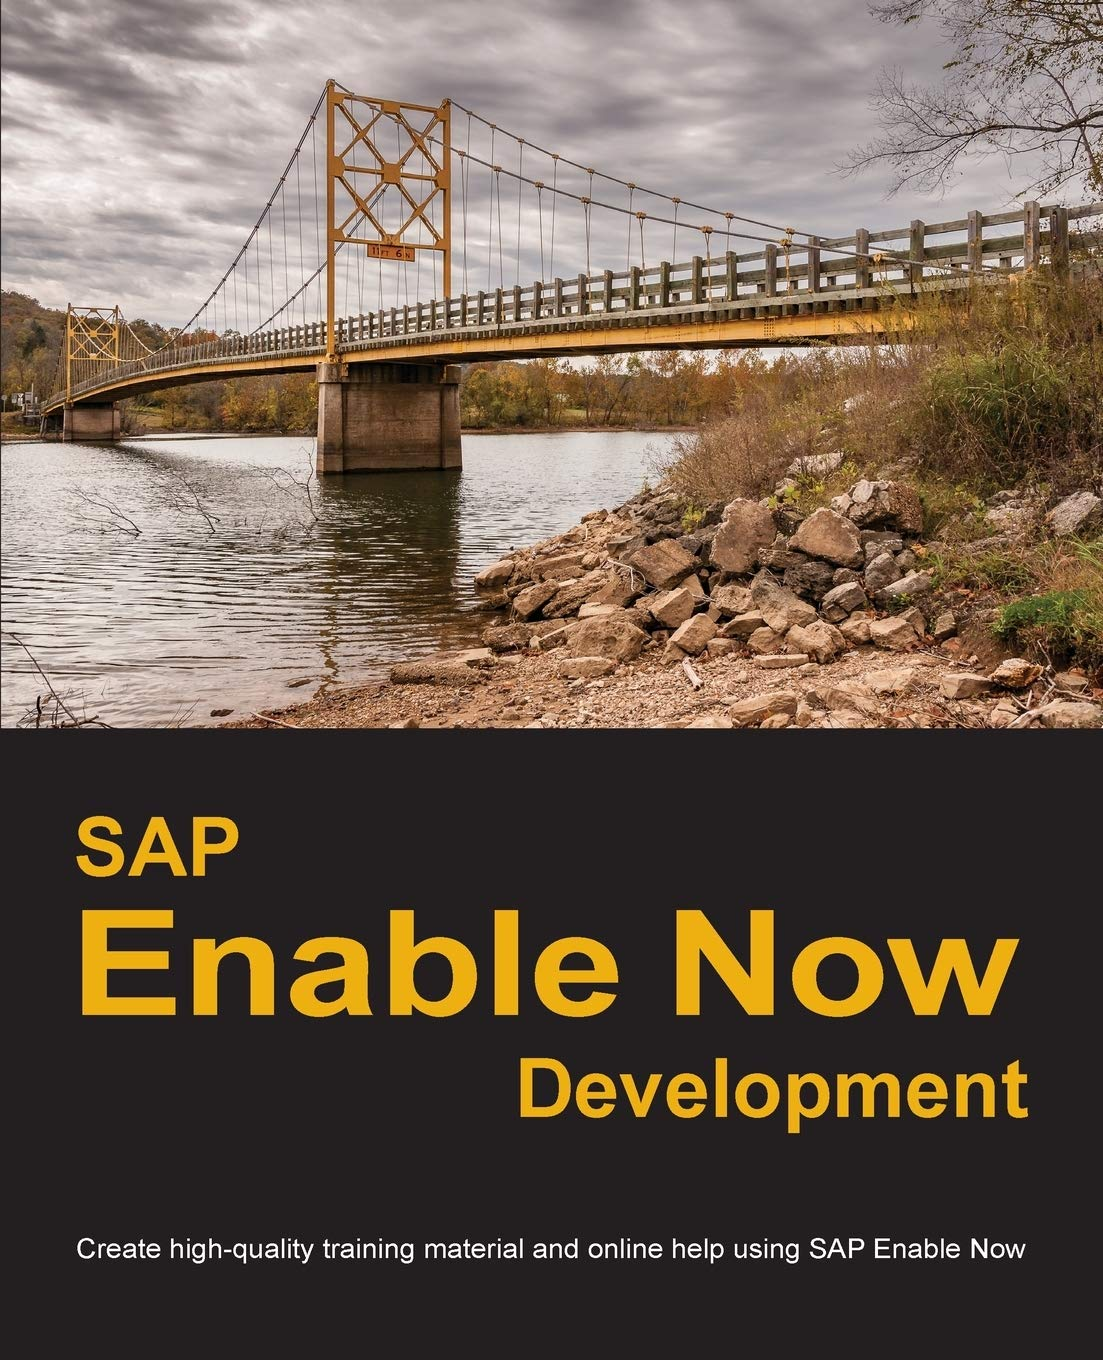 Image OfSAP Enable Now Development: Create High-quality Training Material And Online Help Using SAP Enable Now